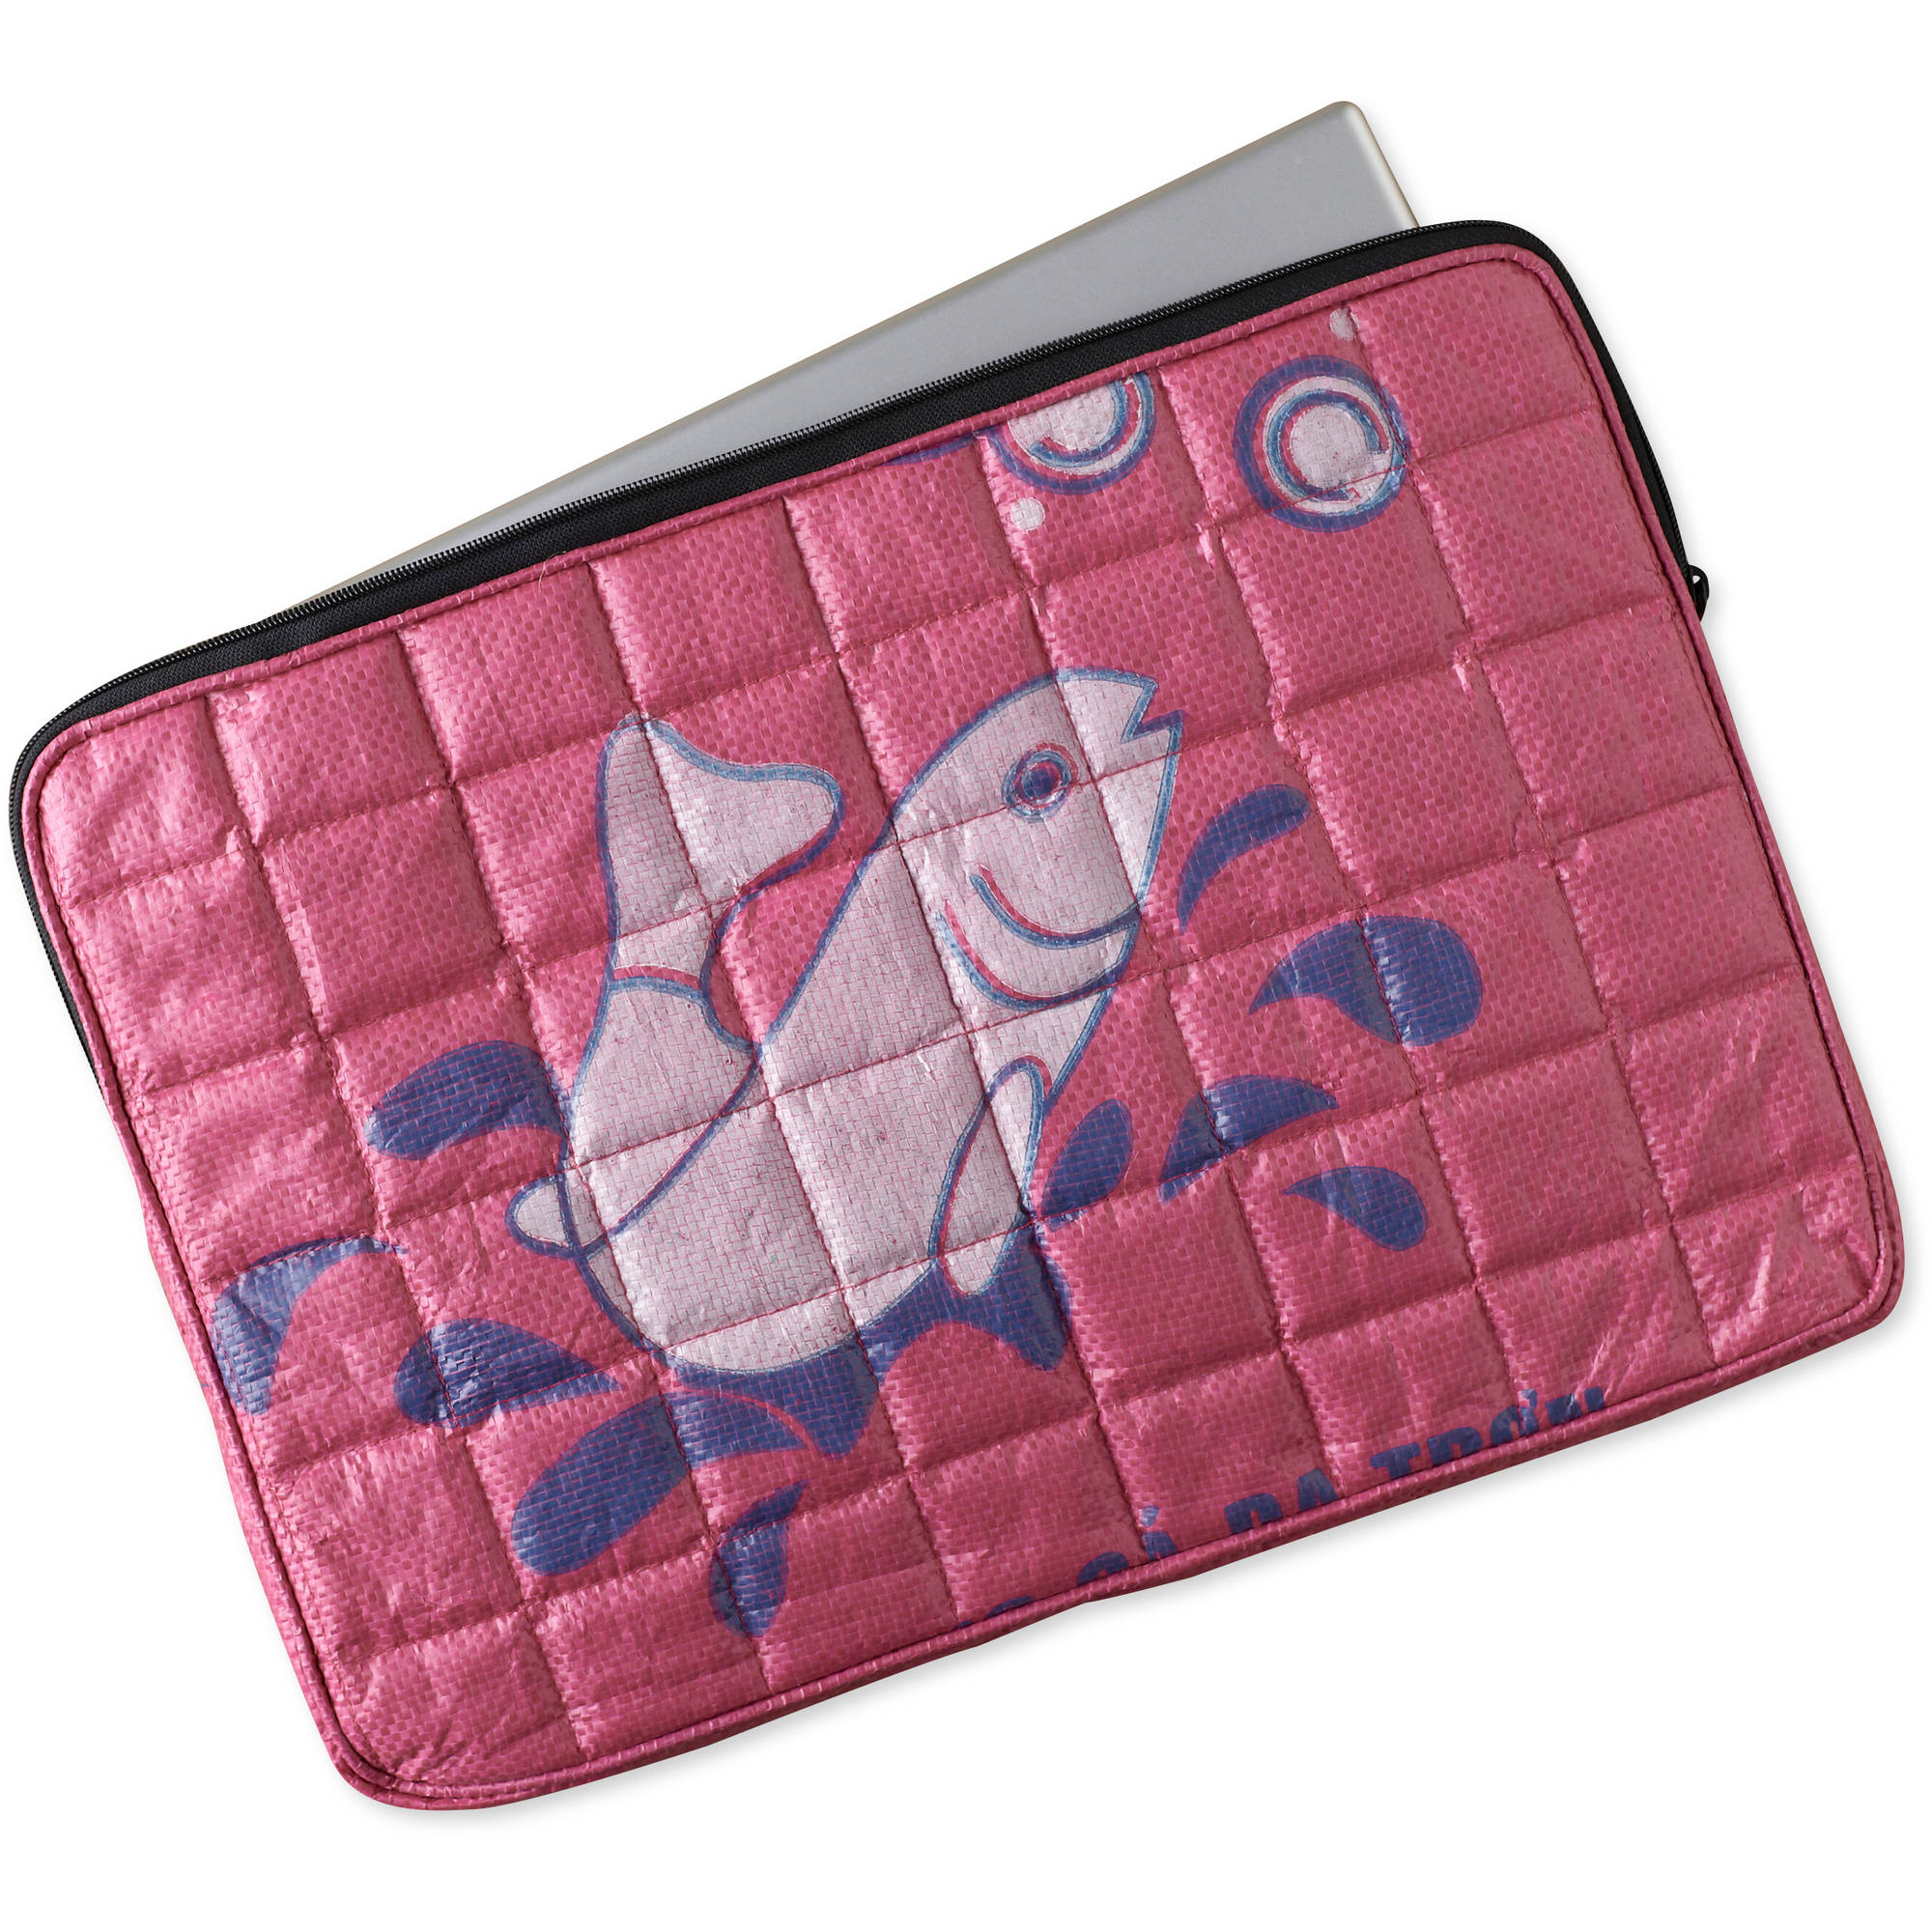 Recycled Rice Bag Quilted Laptop Case by Nomi Network for Full Circle Exchange